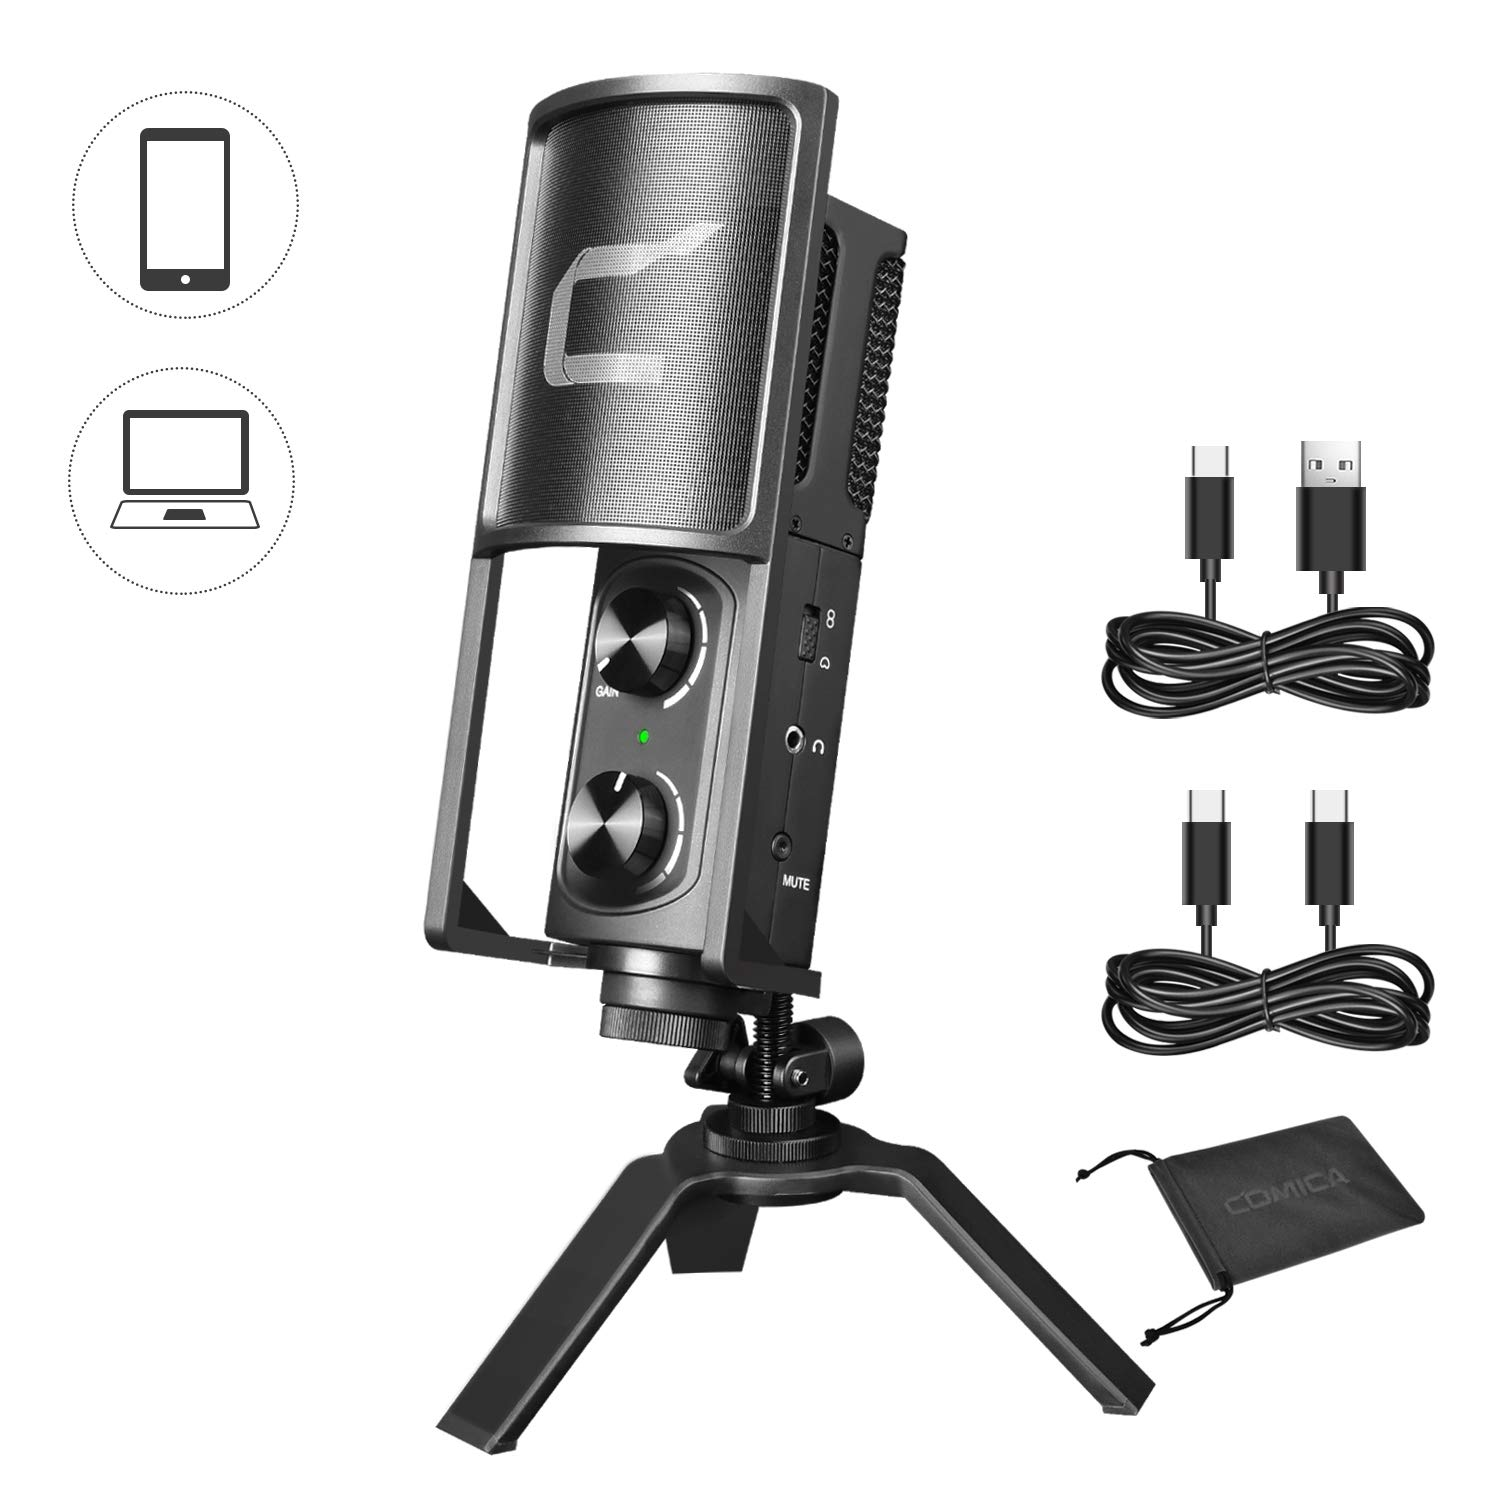 Comica STM-USB Versatile Metal Condenser Cardioid Microphone for USB C Smartphone and Computer, Studio Recording Microphone for Live-Streaming, Podcaster,Gaming, Studio Vocal, Online Course